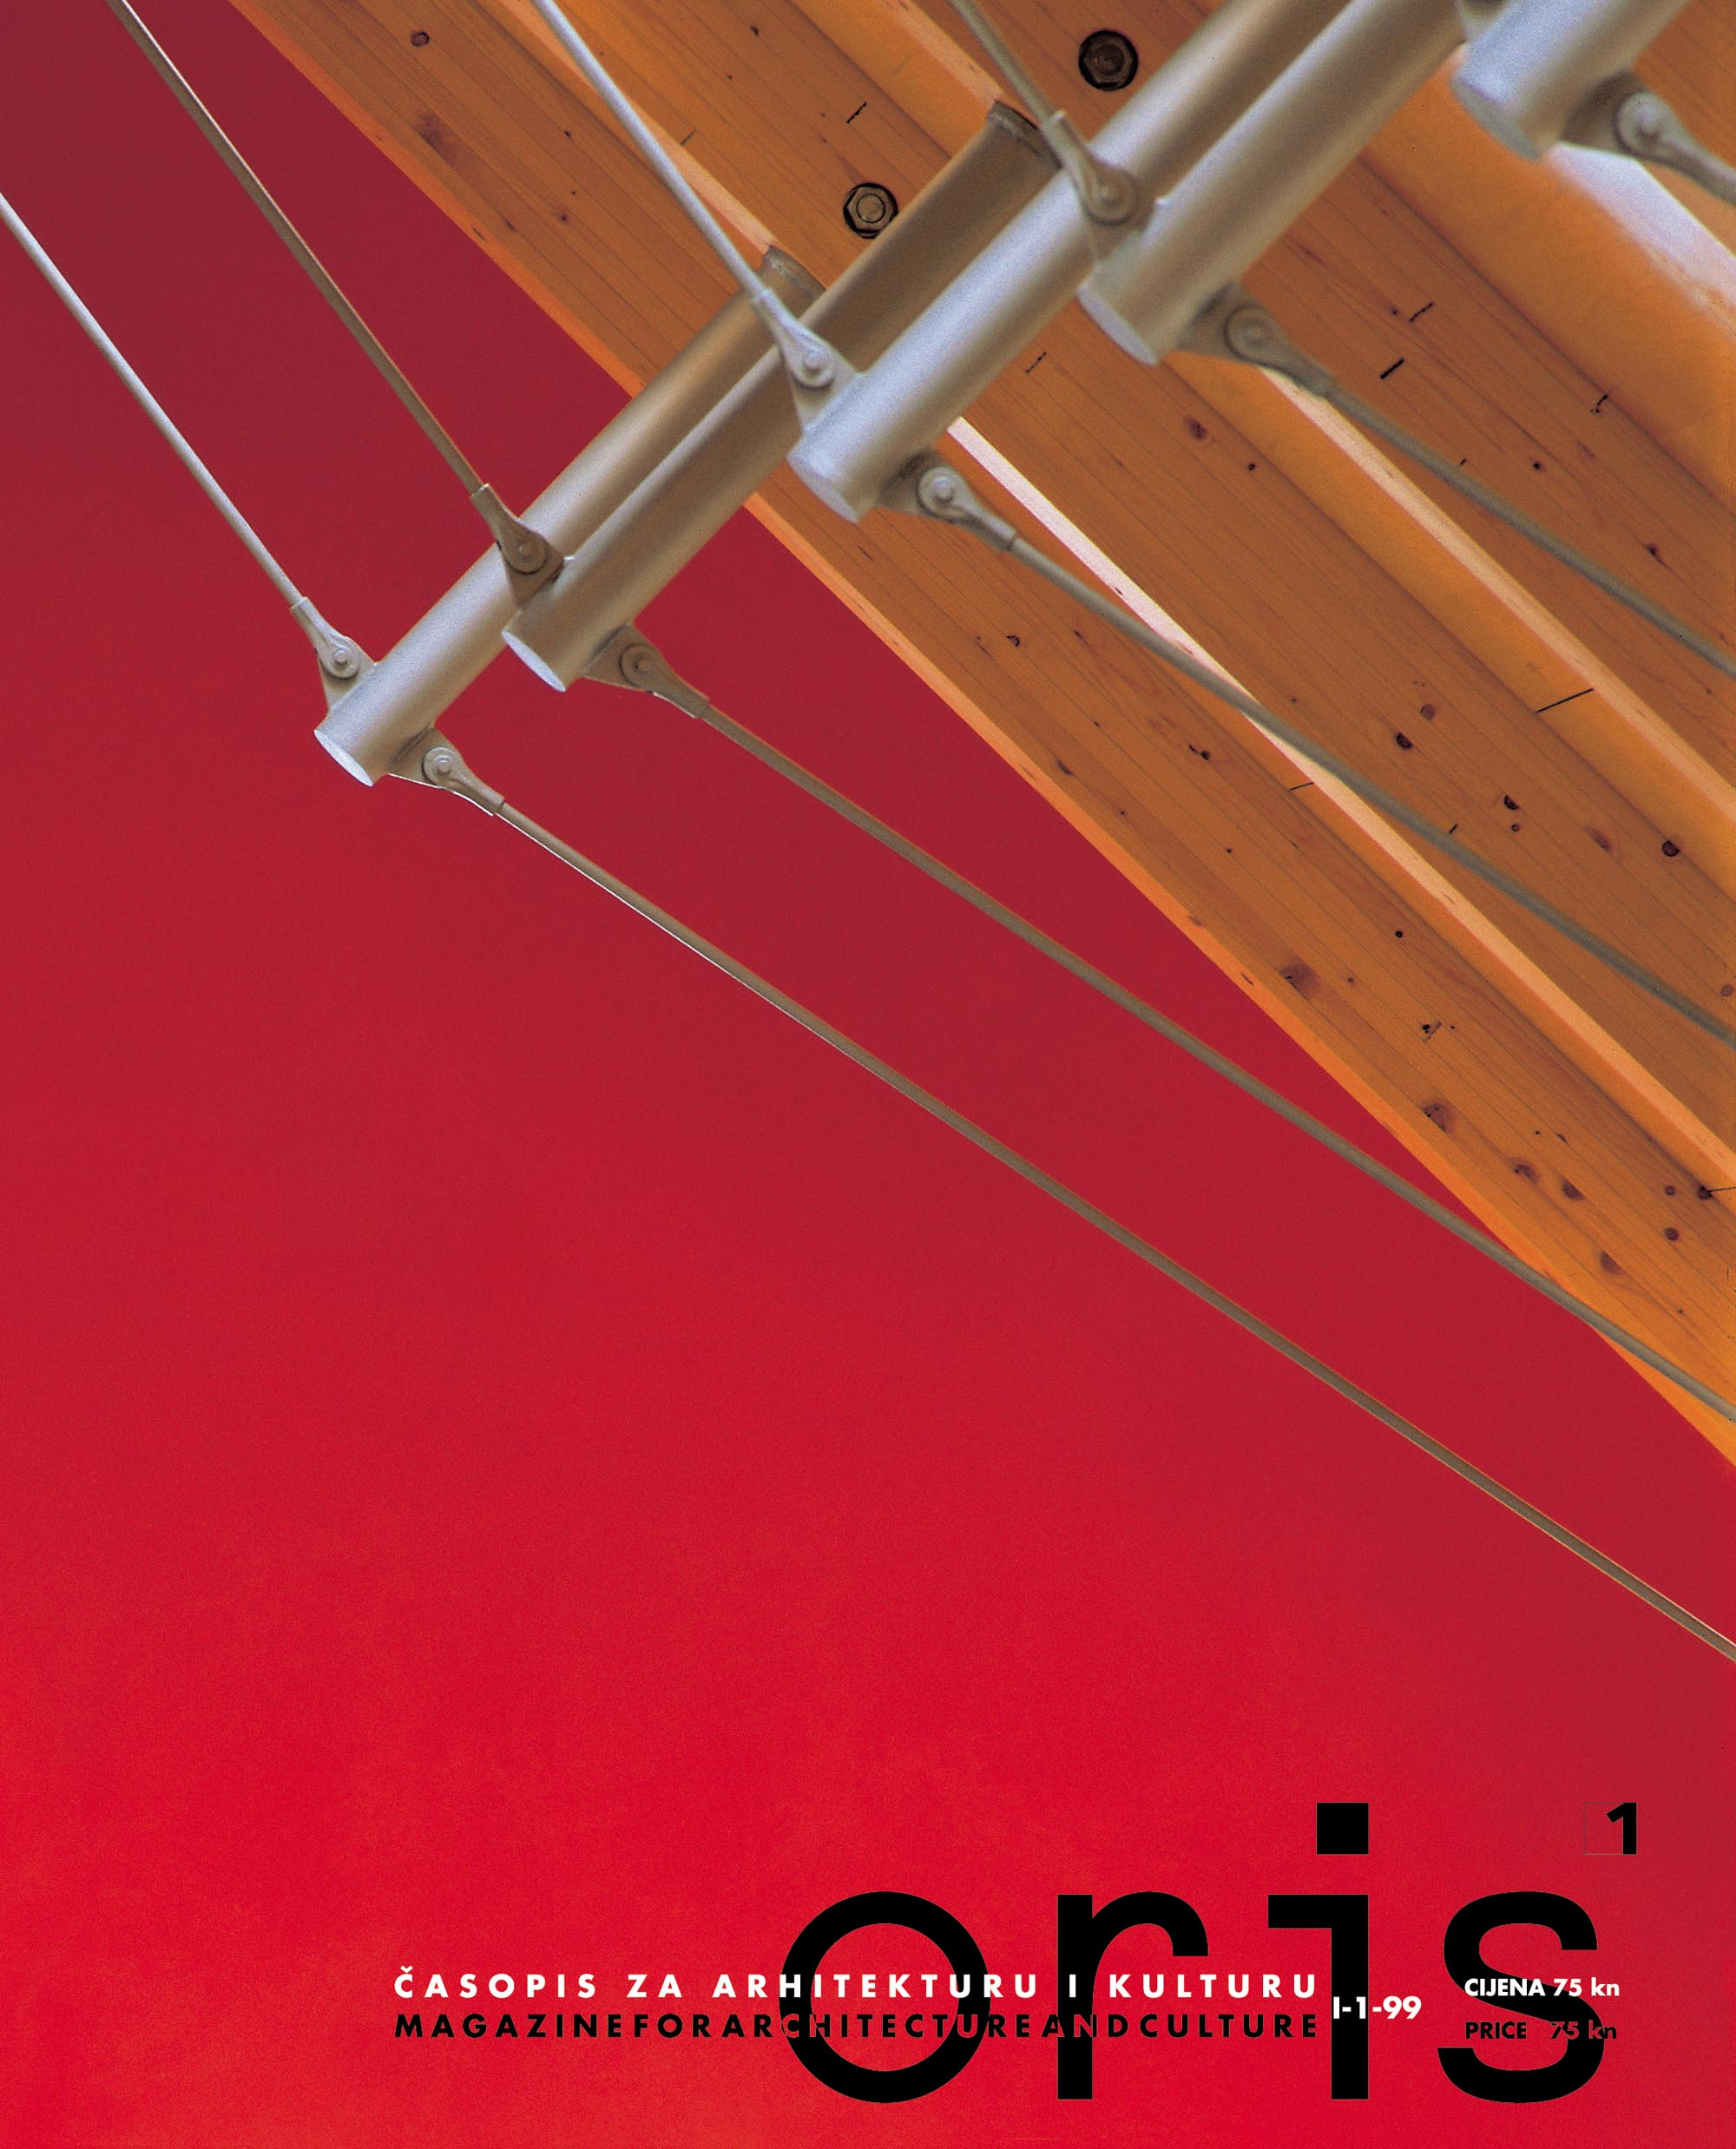 <em>ORIS</em> magazine launched